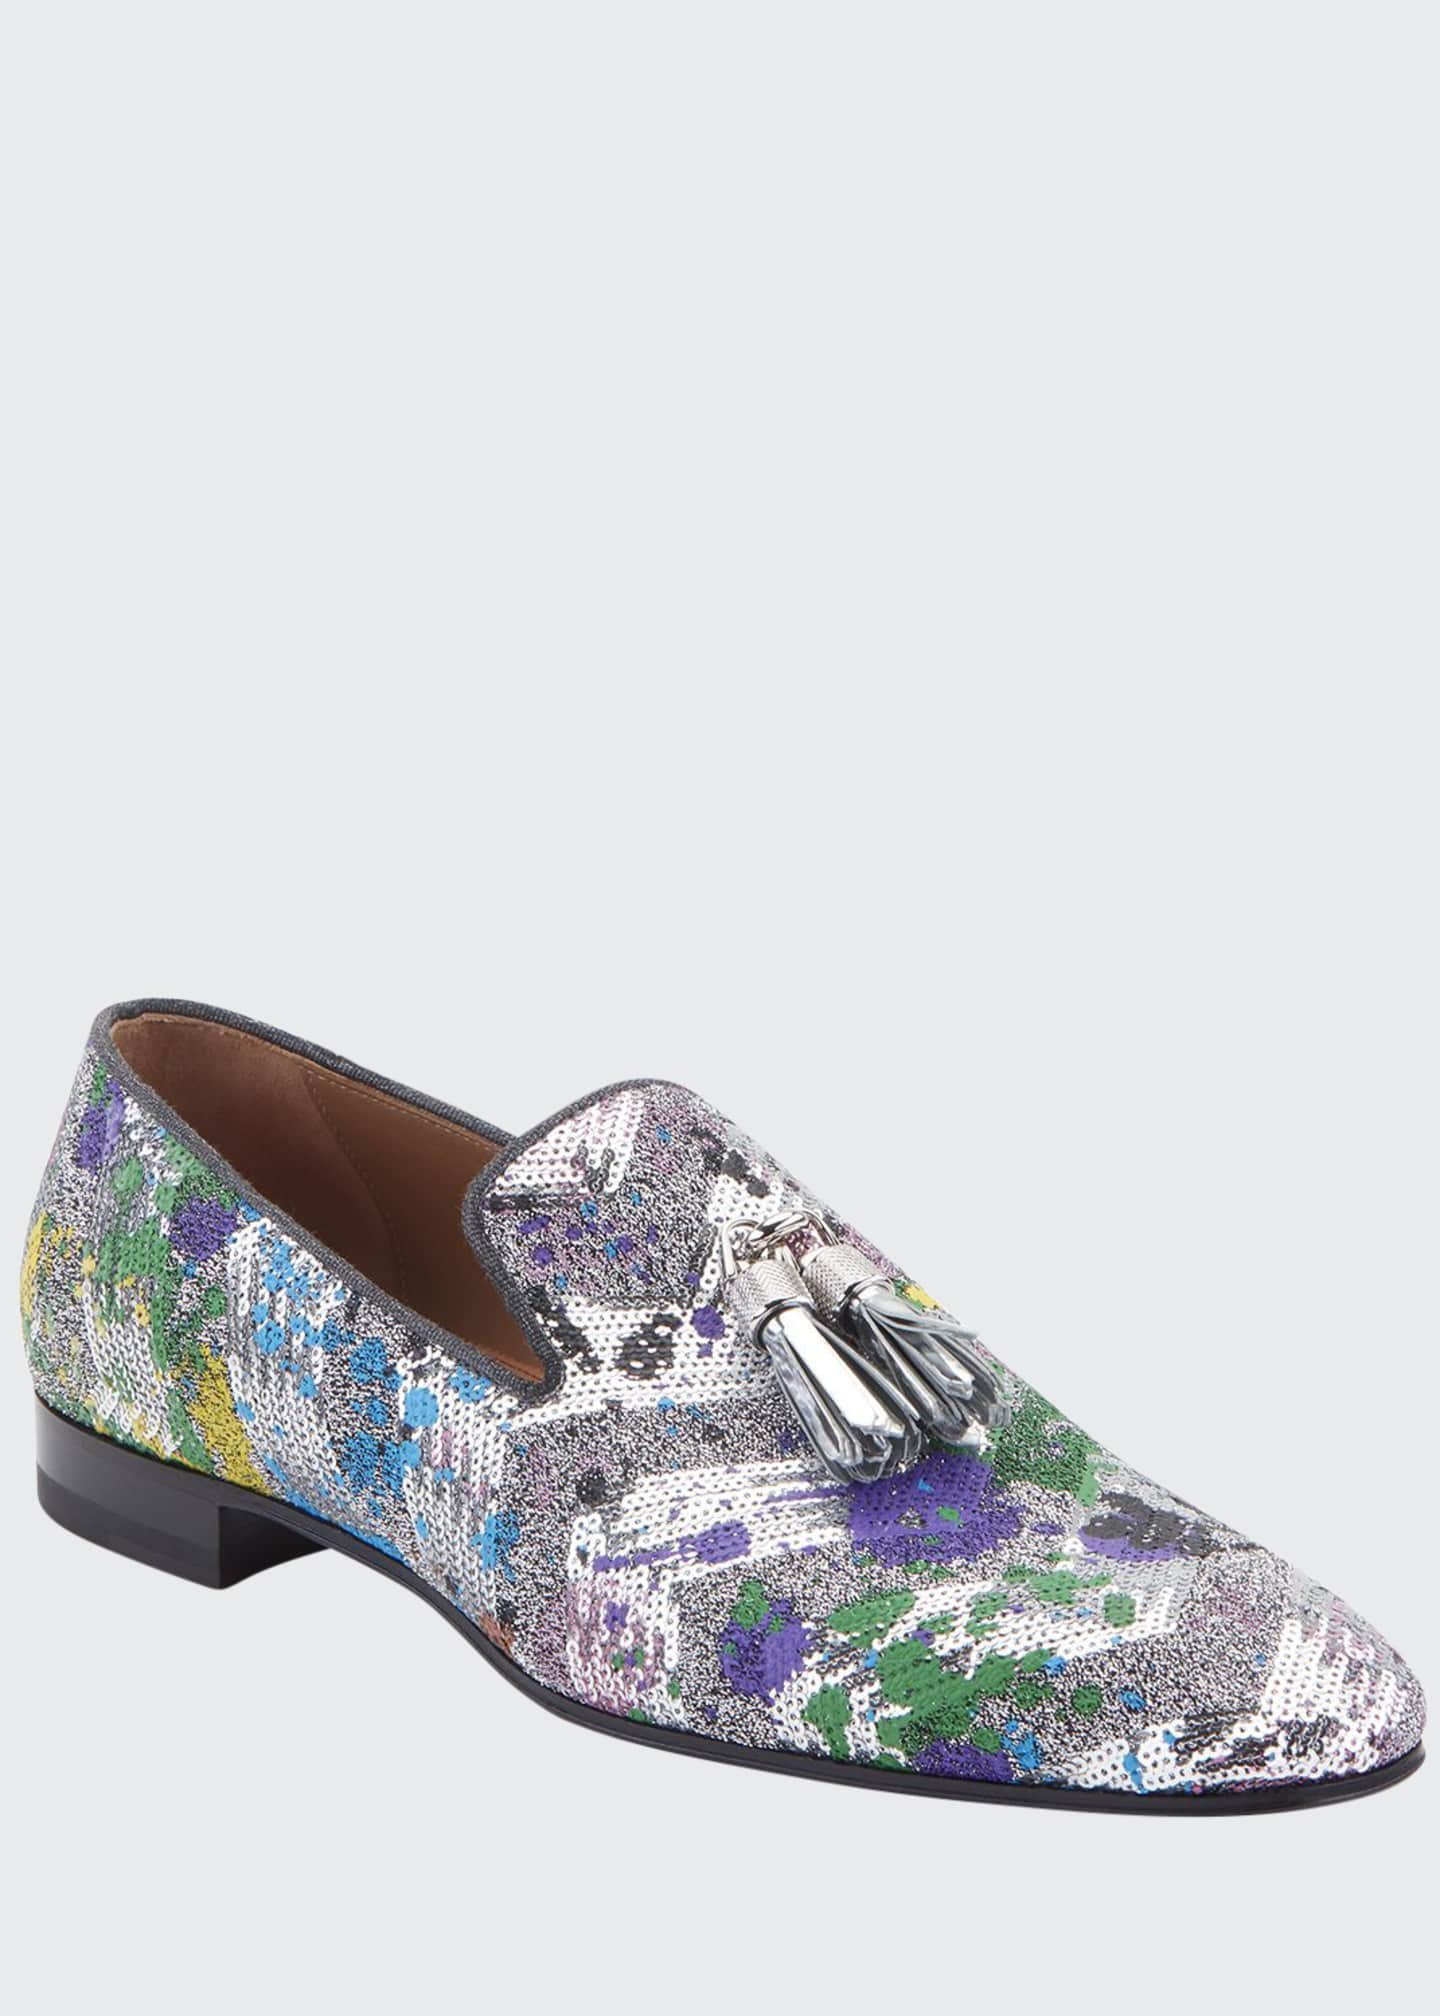 Image 1 of 2: Men's Rivalion Graphic Sequined Tassel Loafers